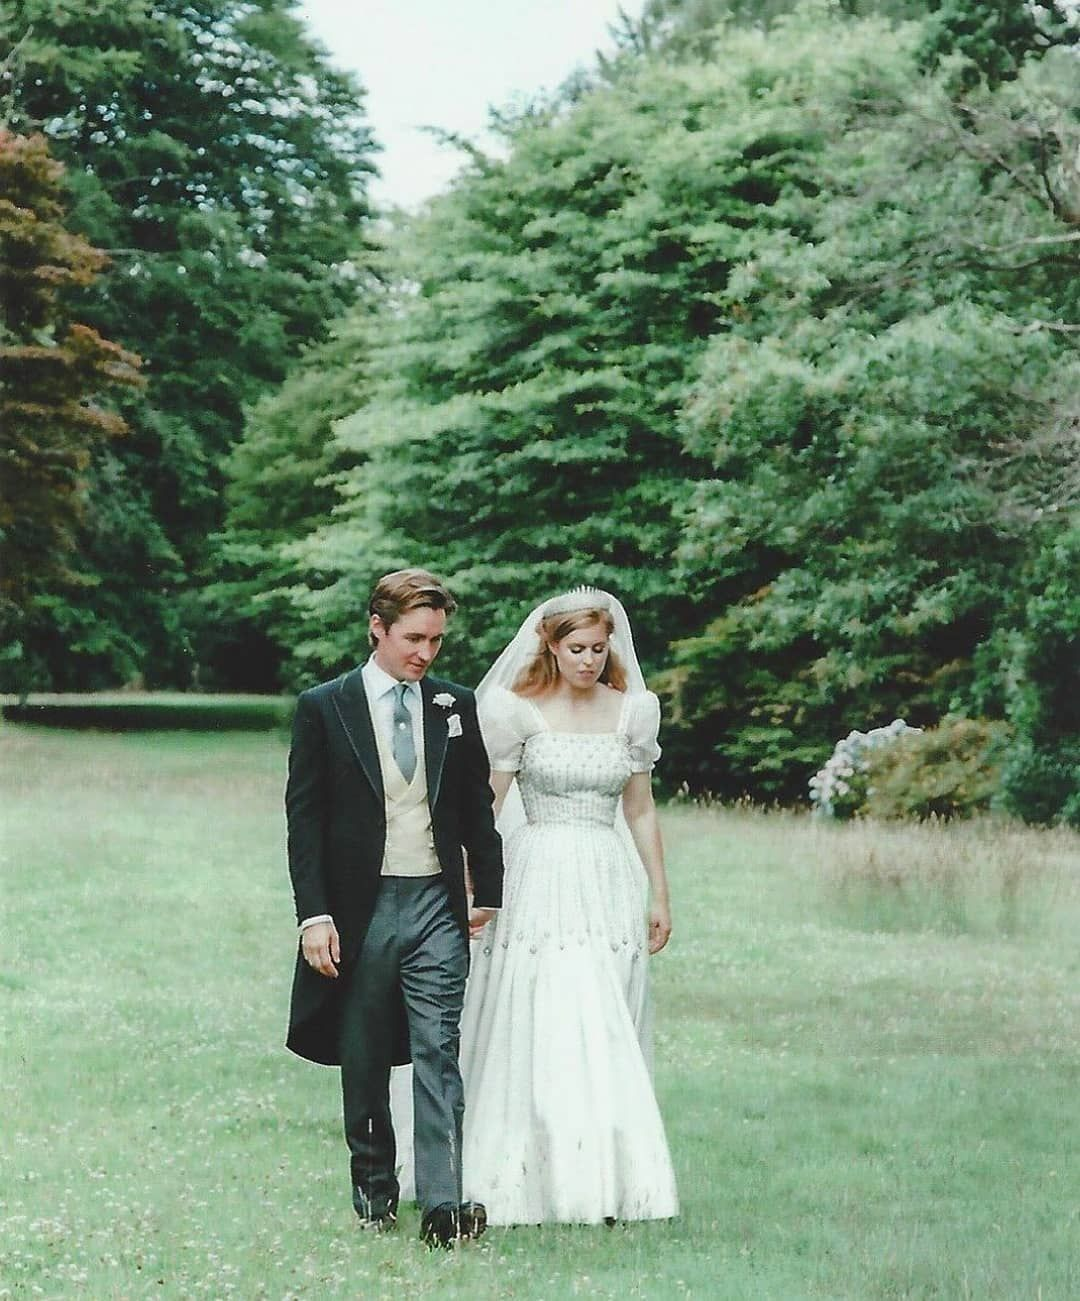 Princess Beatrice Recycled Her Bridal Shoes From Two Previous Weddings She Attended Princess Beatrice Wedding Royal Wedding Dress Royal Wedding Gowns [ 2000 x 1333 Pixel ]